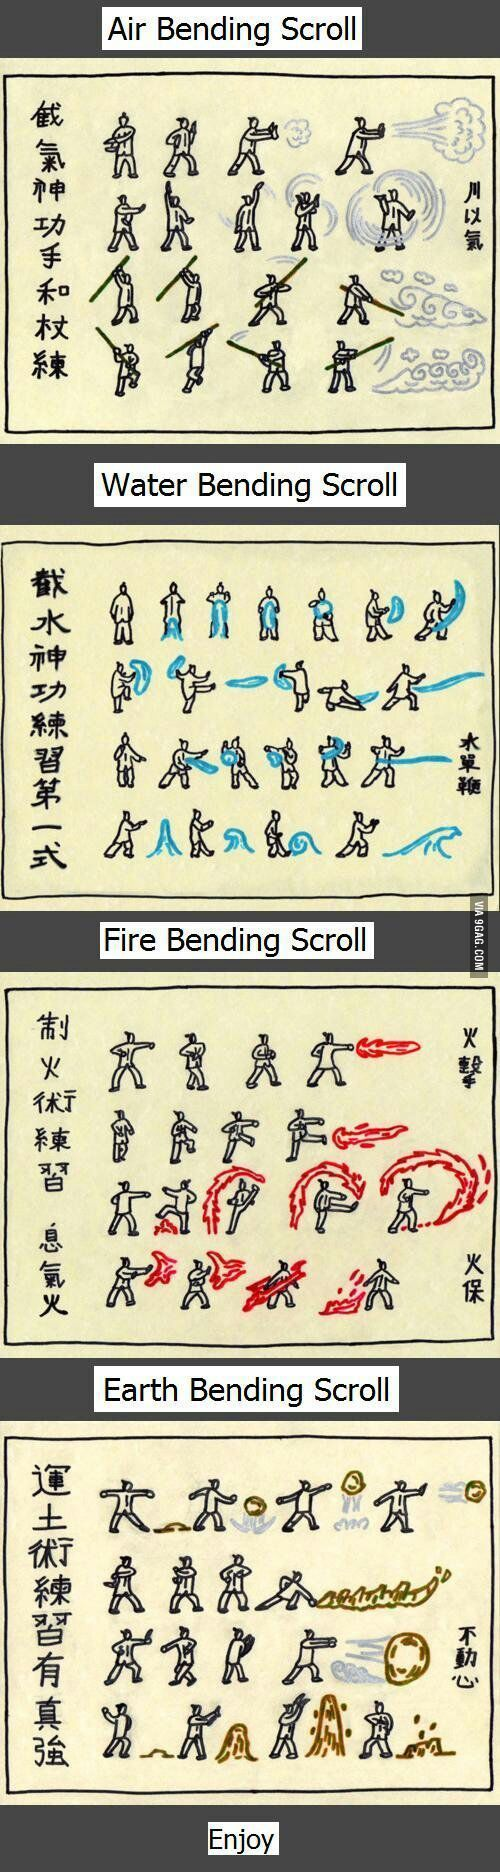 Avatar's bender training scroll. I need this, in case the fire nation attack Minnesota <-- Lol comment